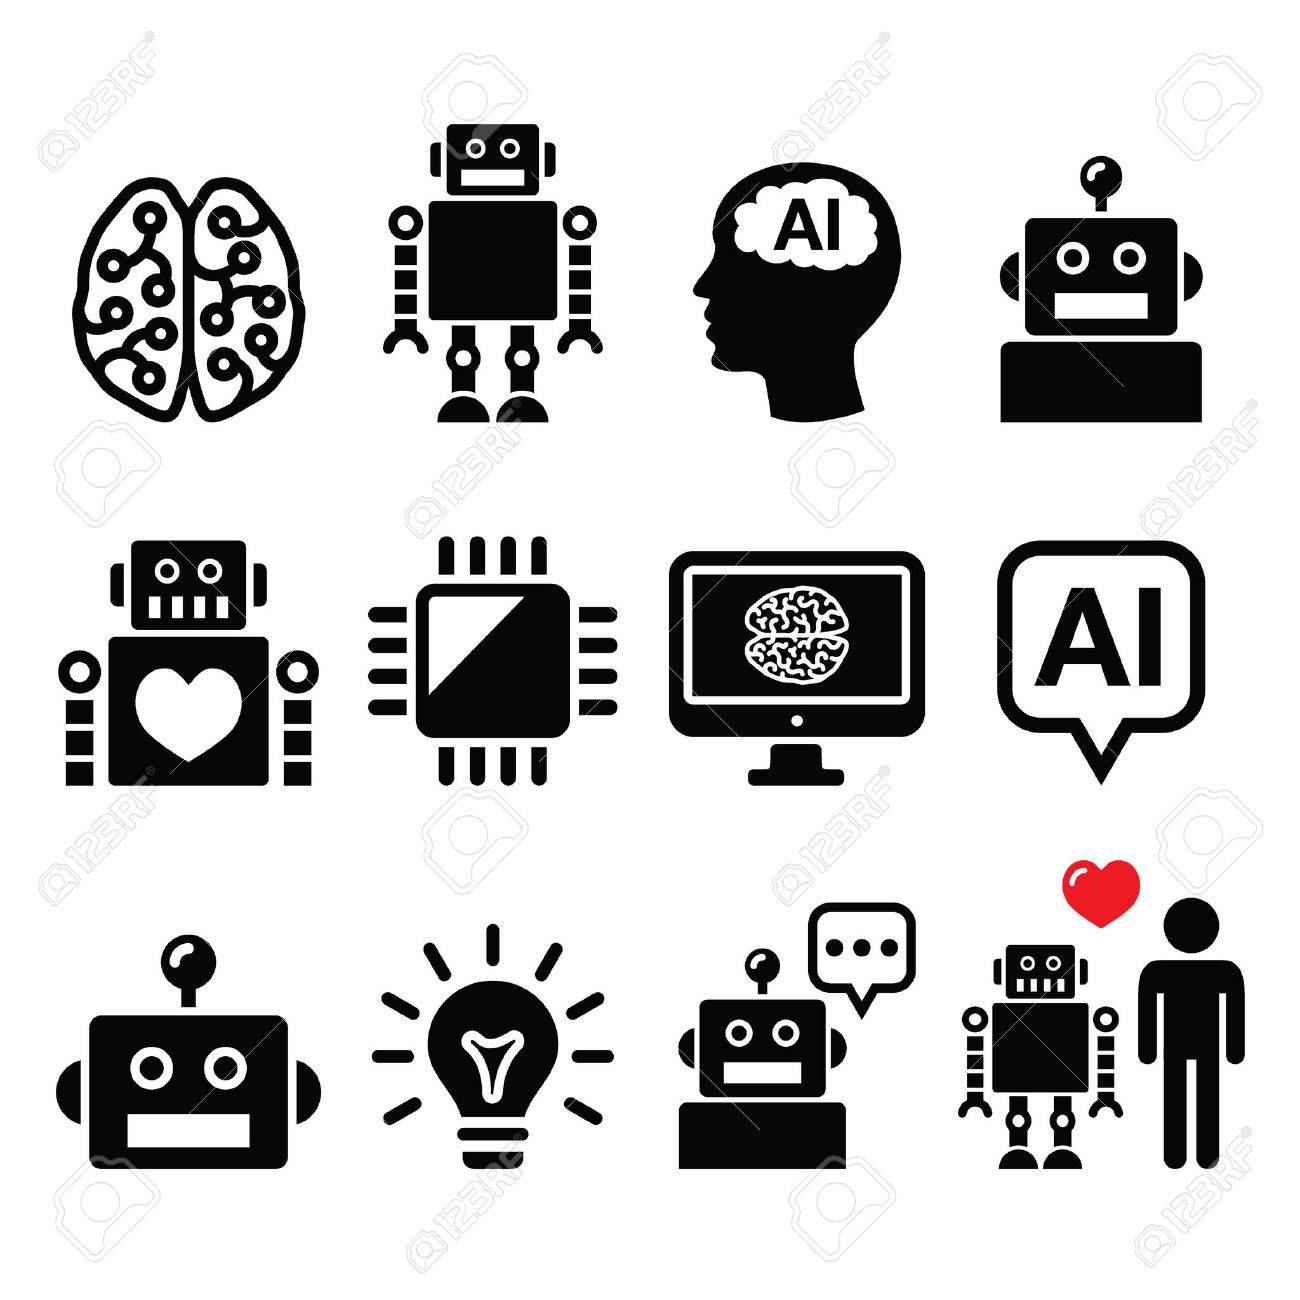 Artificial Intelligence Ai Robot Icons Set Royalty Free Cliparts